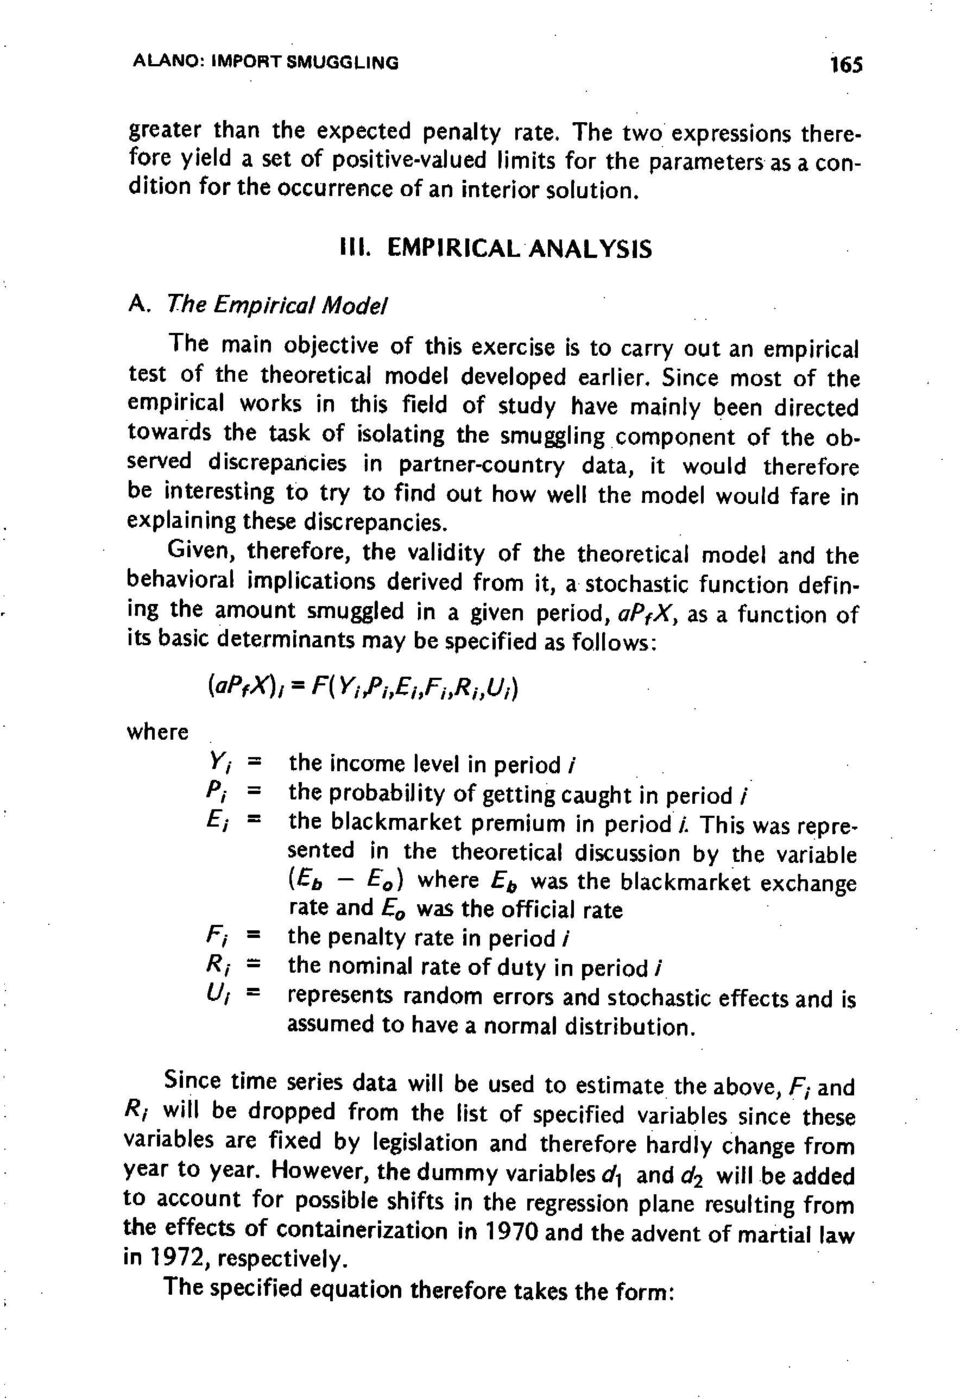 The Empirical Model The main objective of this exercise is to carry out an empirical test of the theoretical model developed earlier.